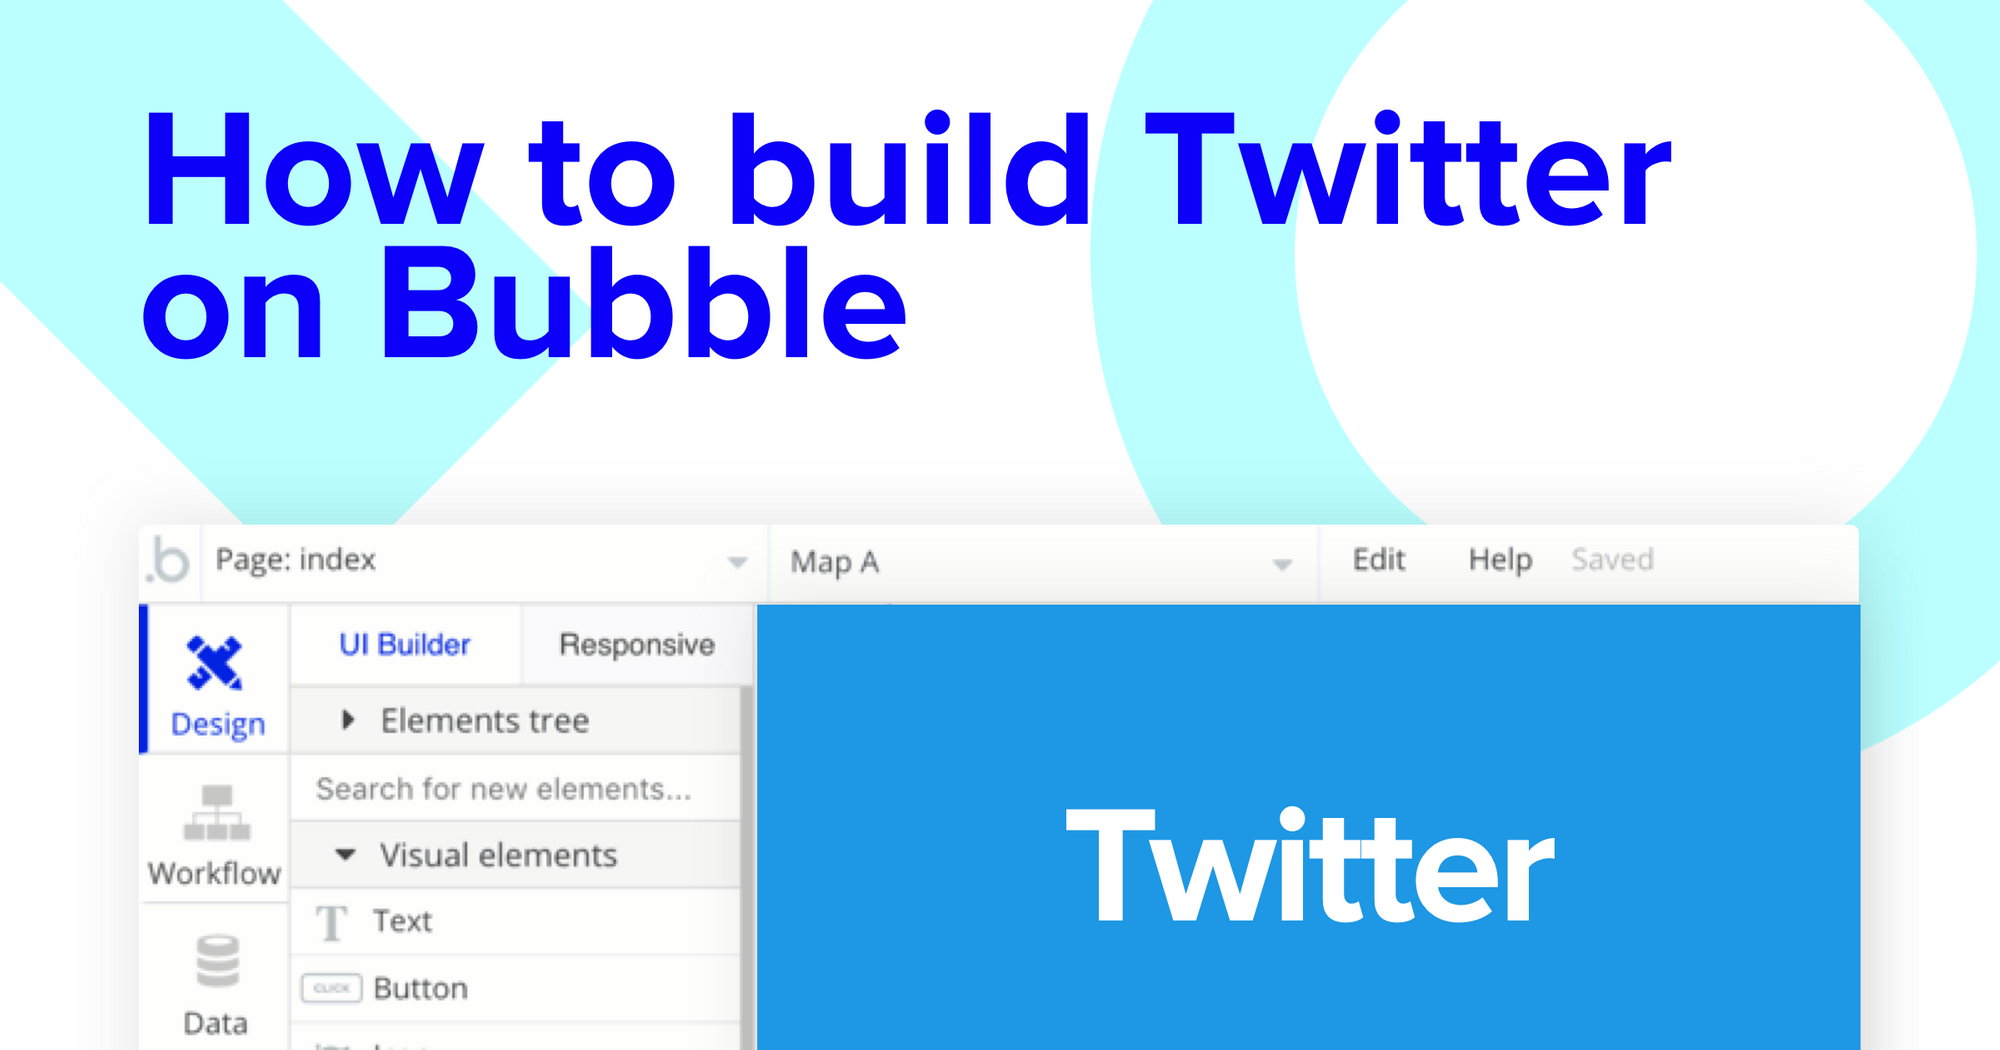 How To Build a Twitter Clone Without Code